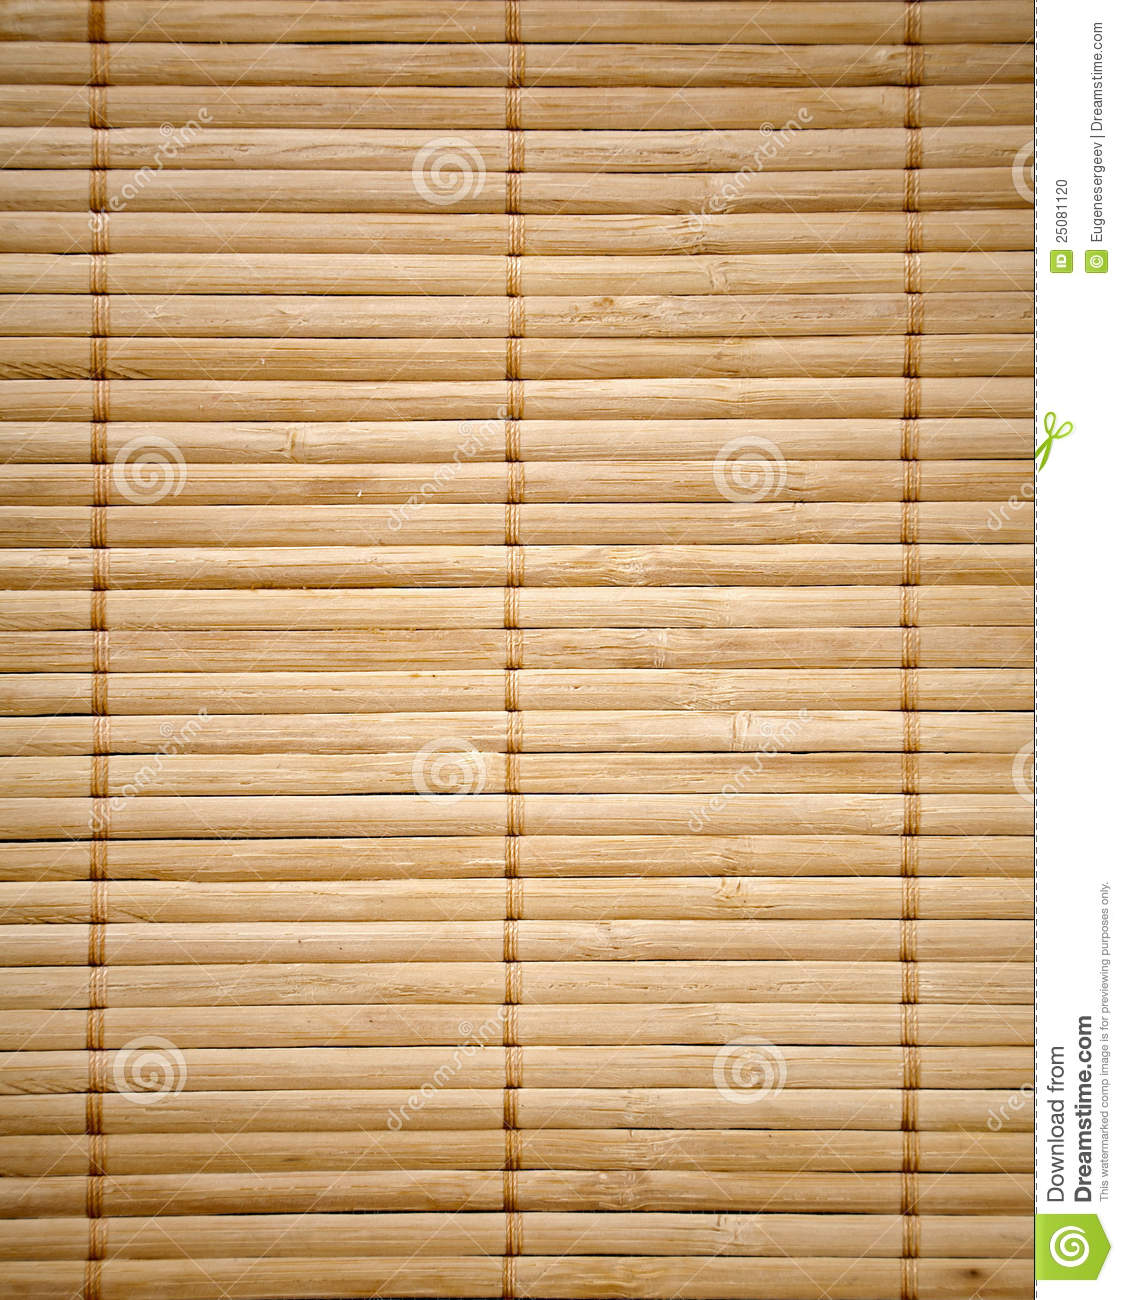 Bamboo Mat Texture Stock Photo Image 25081120